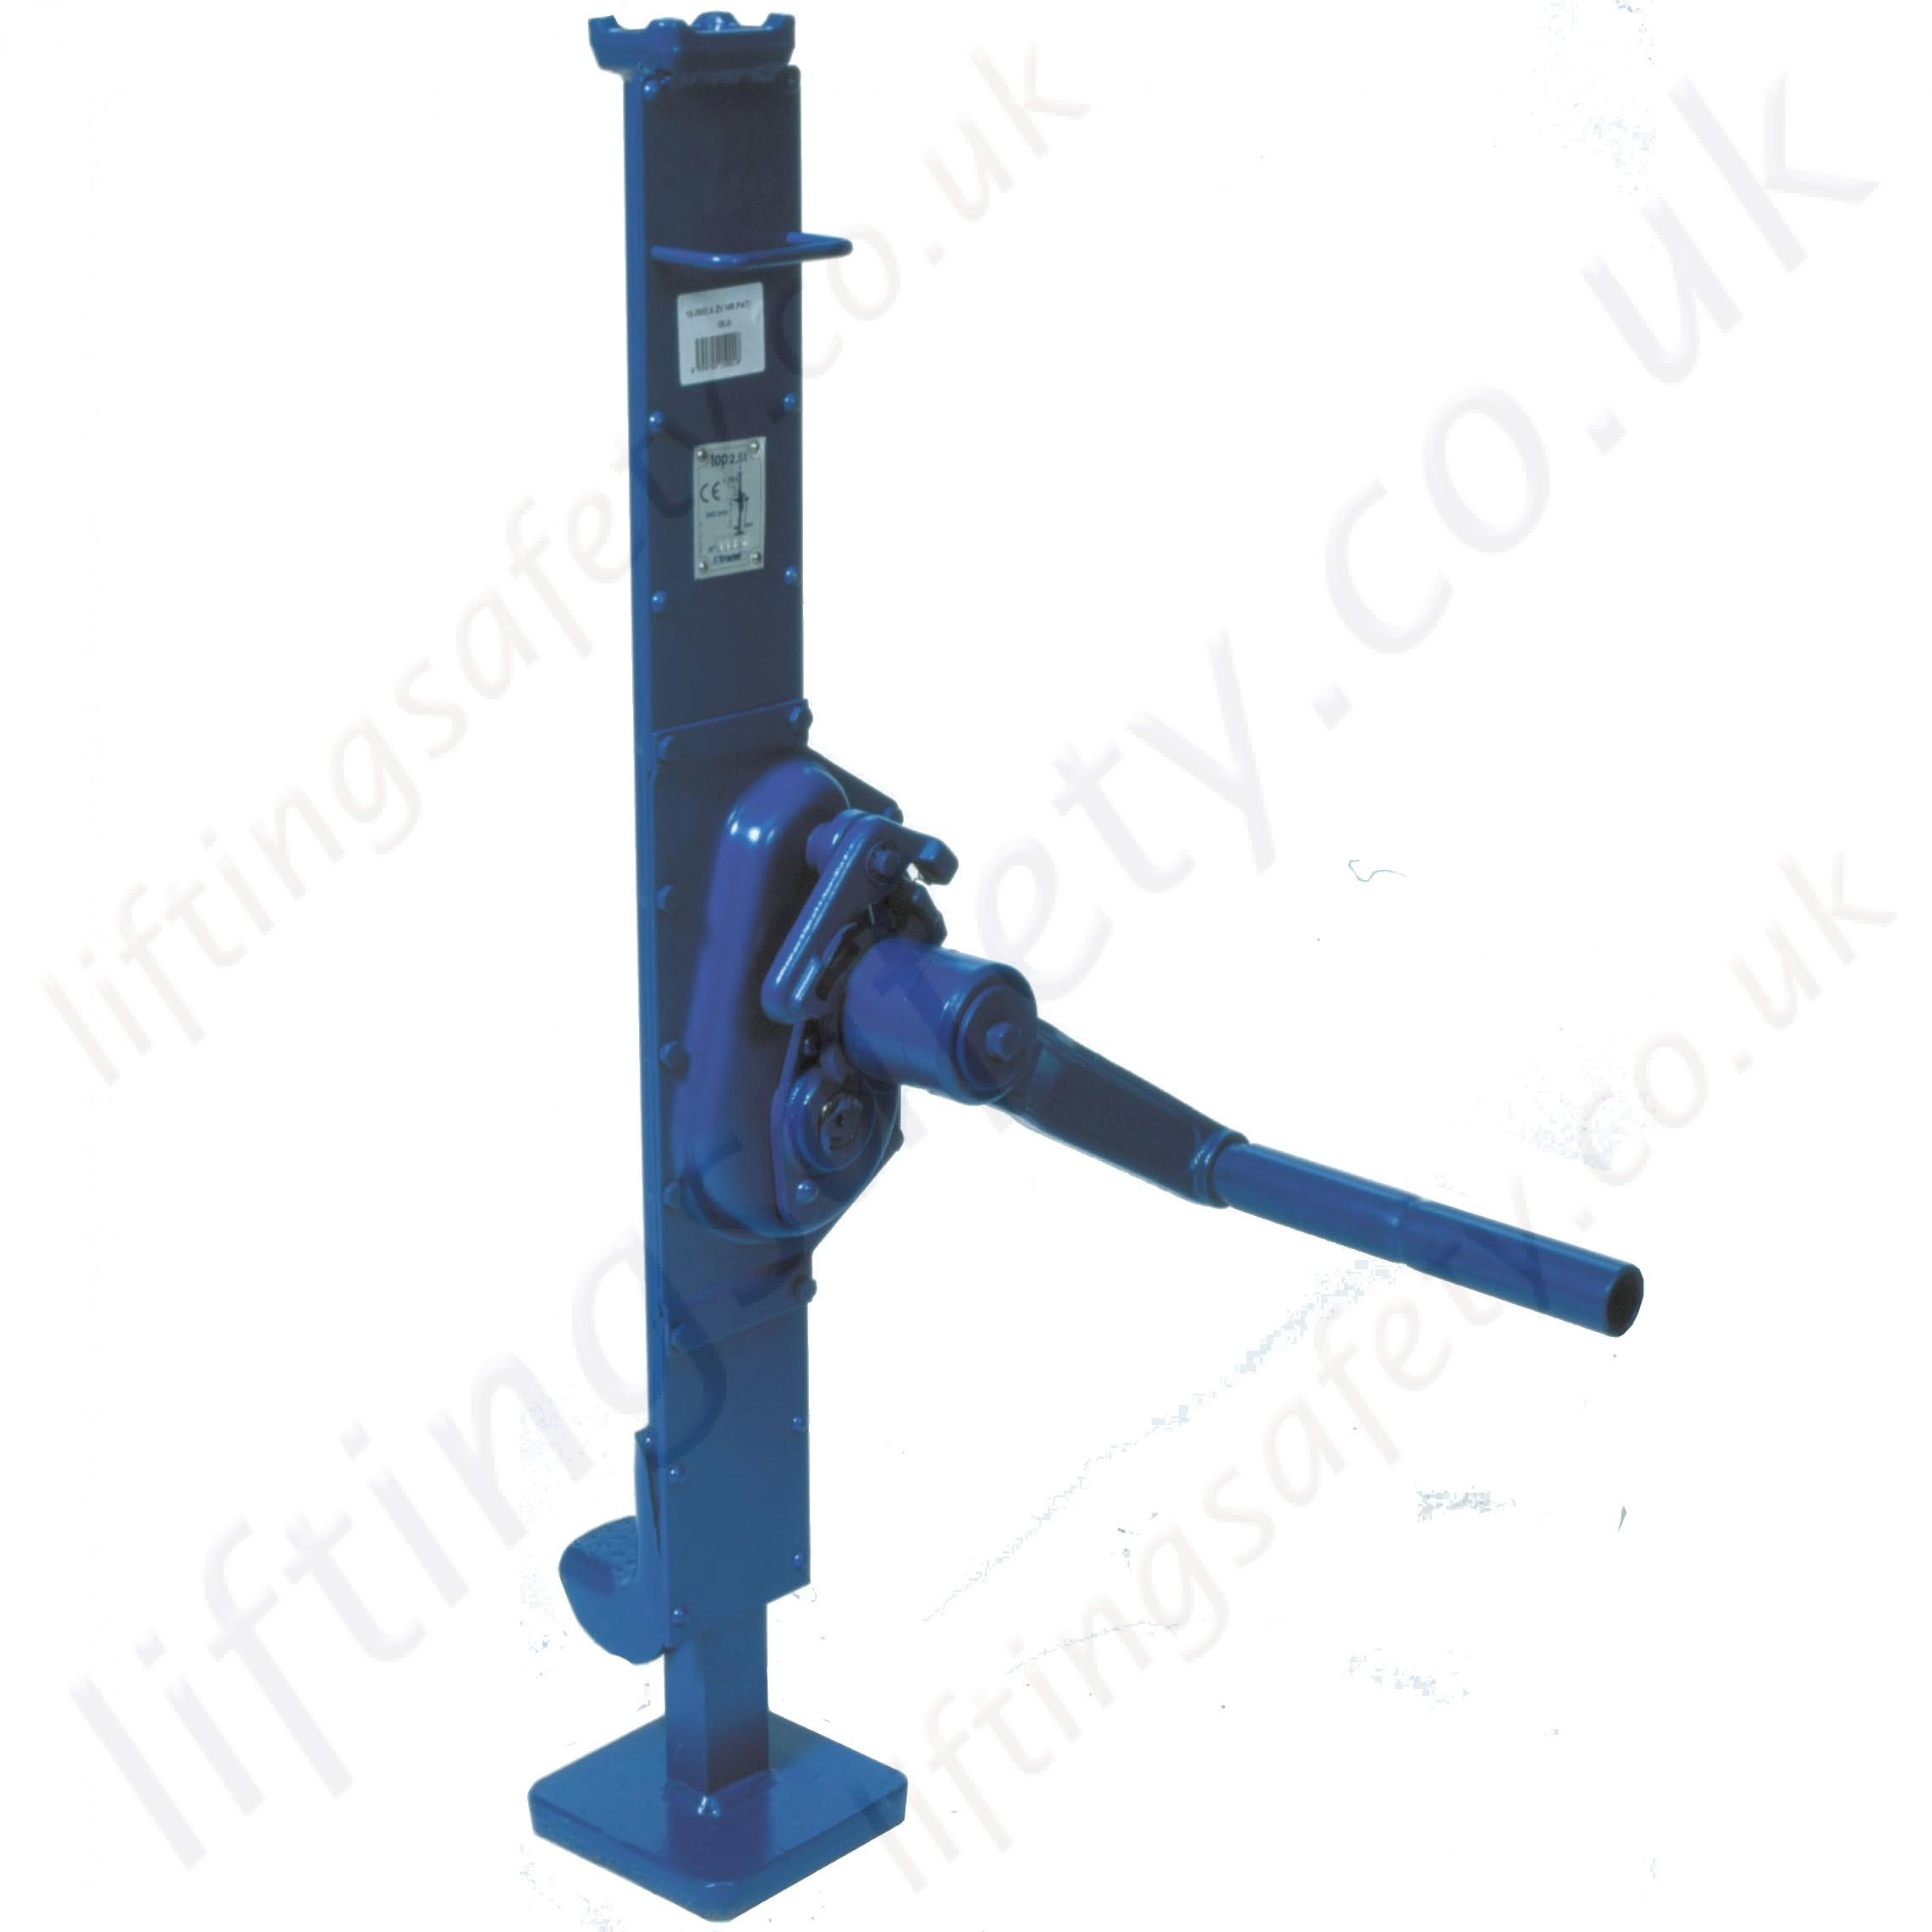 Hydraulic Jack Lifting Foundation For House : Tractel top toe jack bt range from kg to